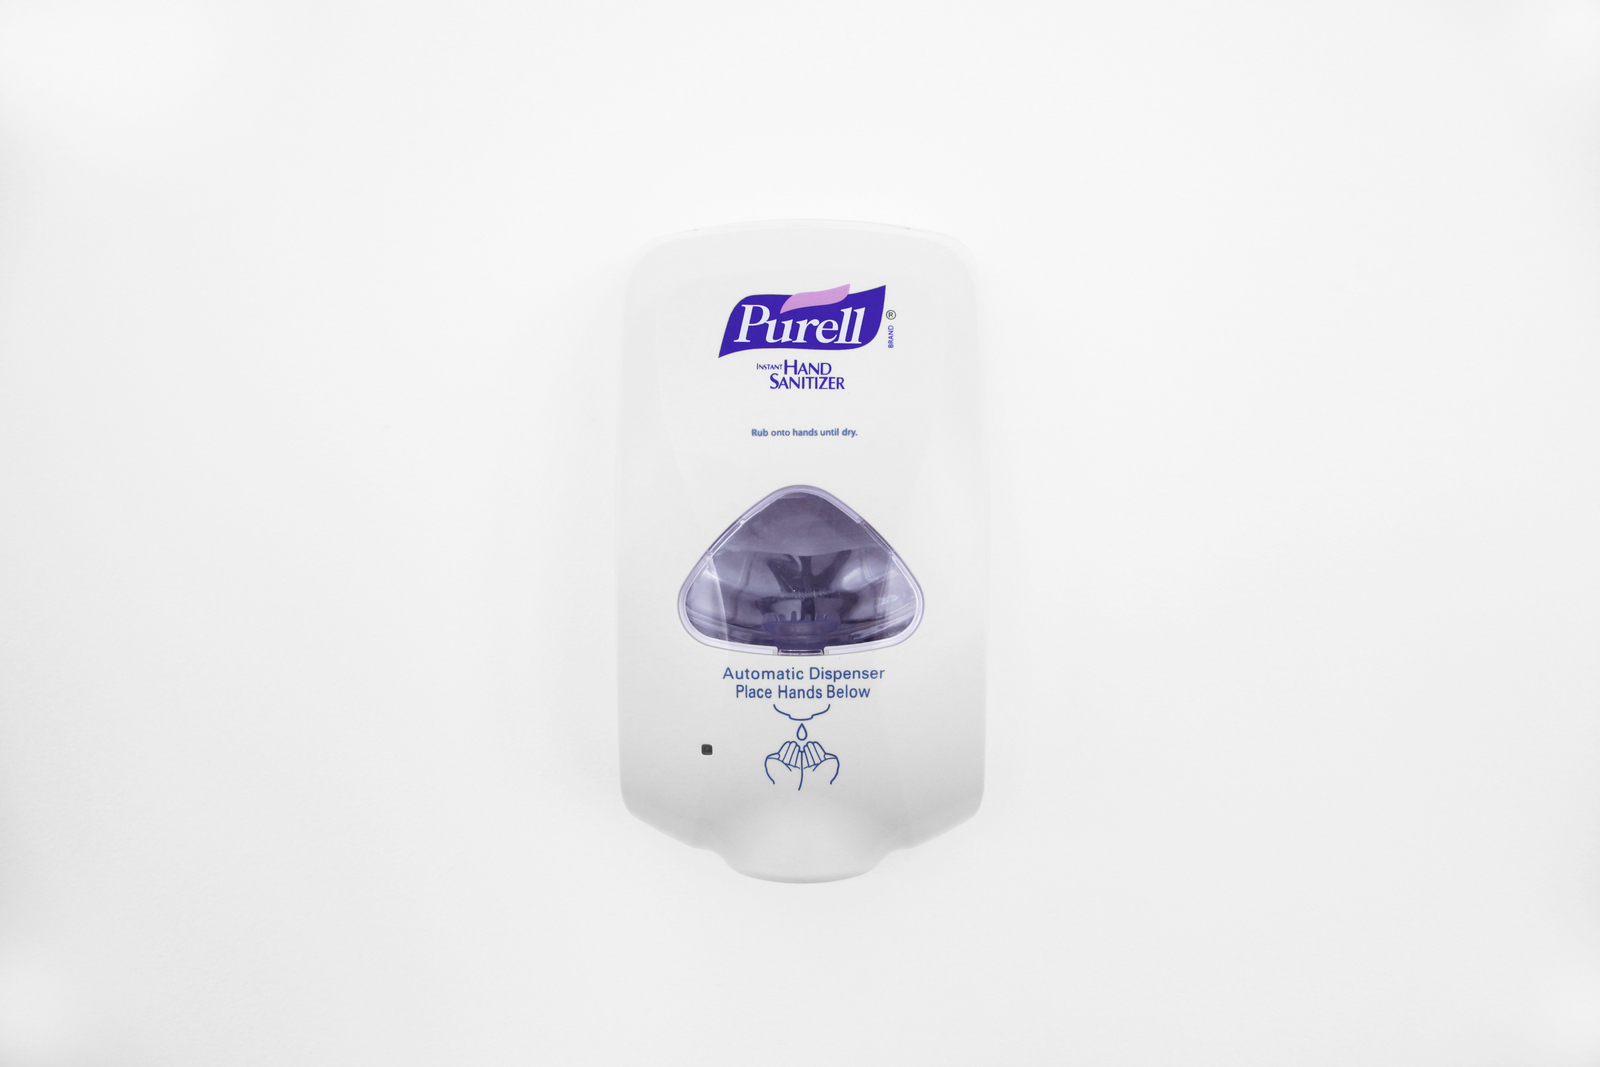 pp7 Untitled (Purell), 2012